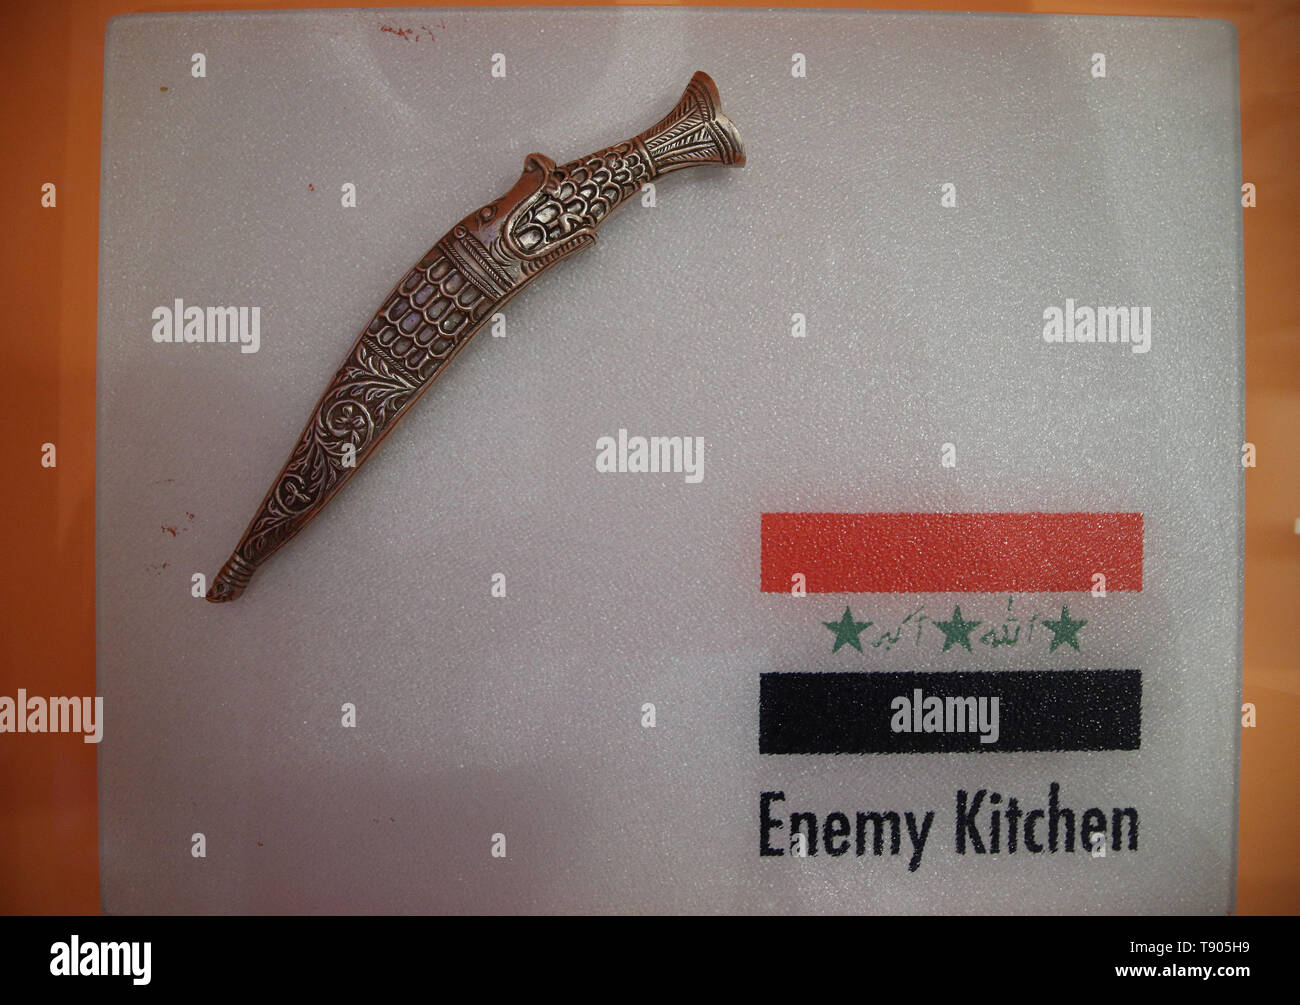 A knife (made especially for the project by Saddam Hussein's sword-maker) resting on a cutting board, as part of 'Enemy Kitchen' - a project by artist Michael Rakowitz, an Iraqi Jew, that opens up conversations about the relationship between two warring countries - on display at the FOOD: Bigger than the Plate exhibition at the Victoria and Albert Museum in London. - Stock Image